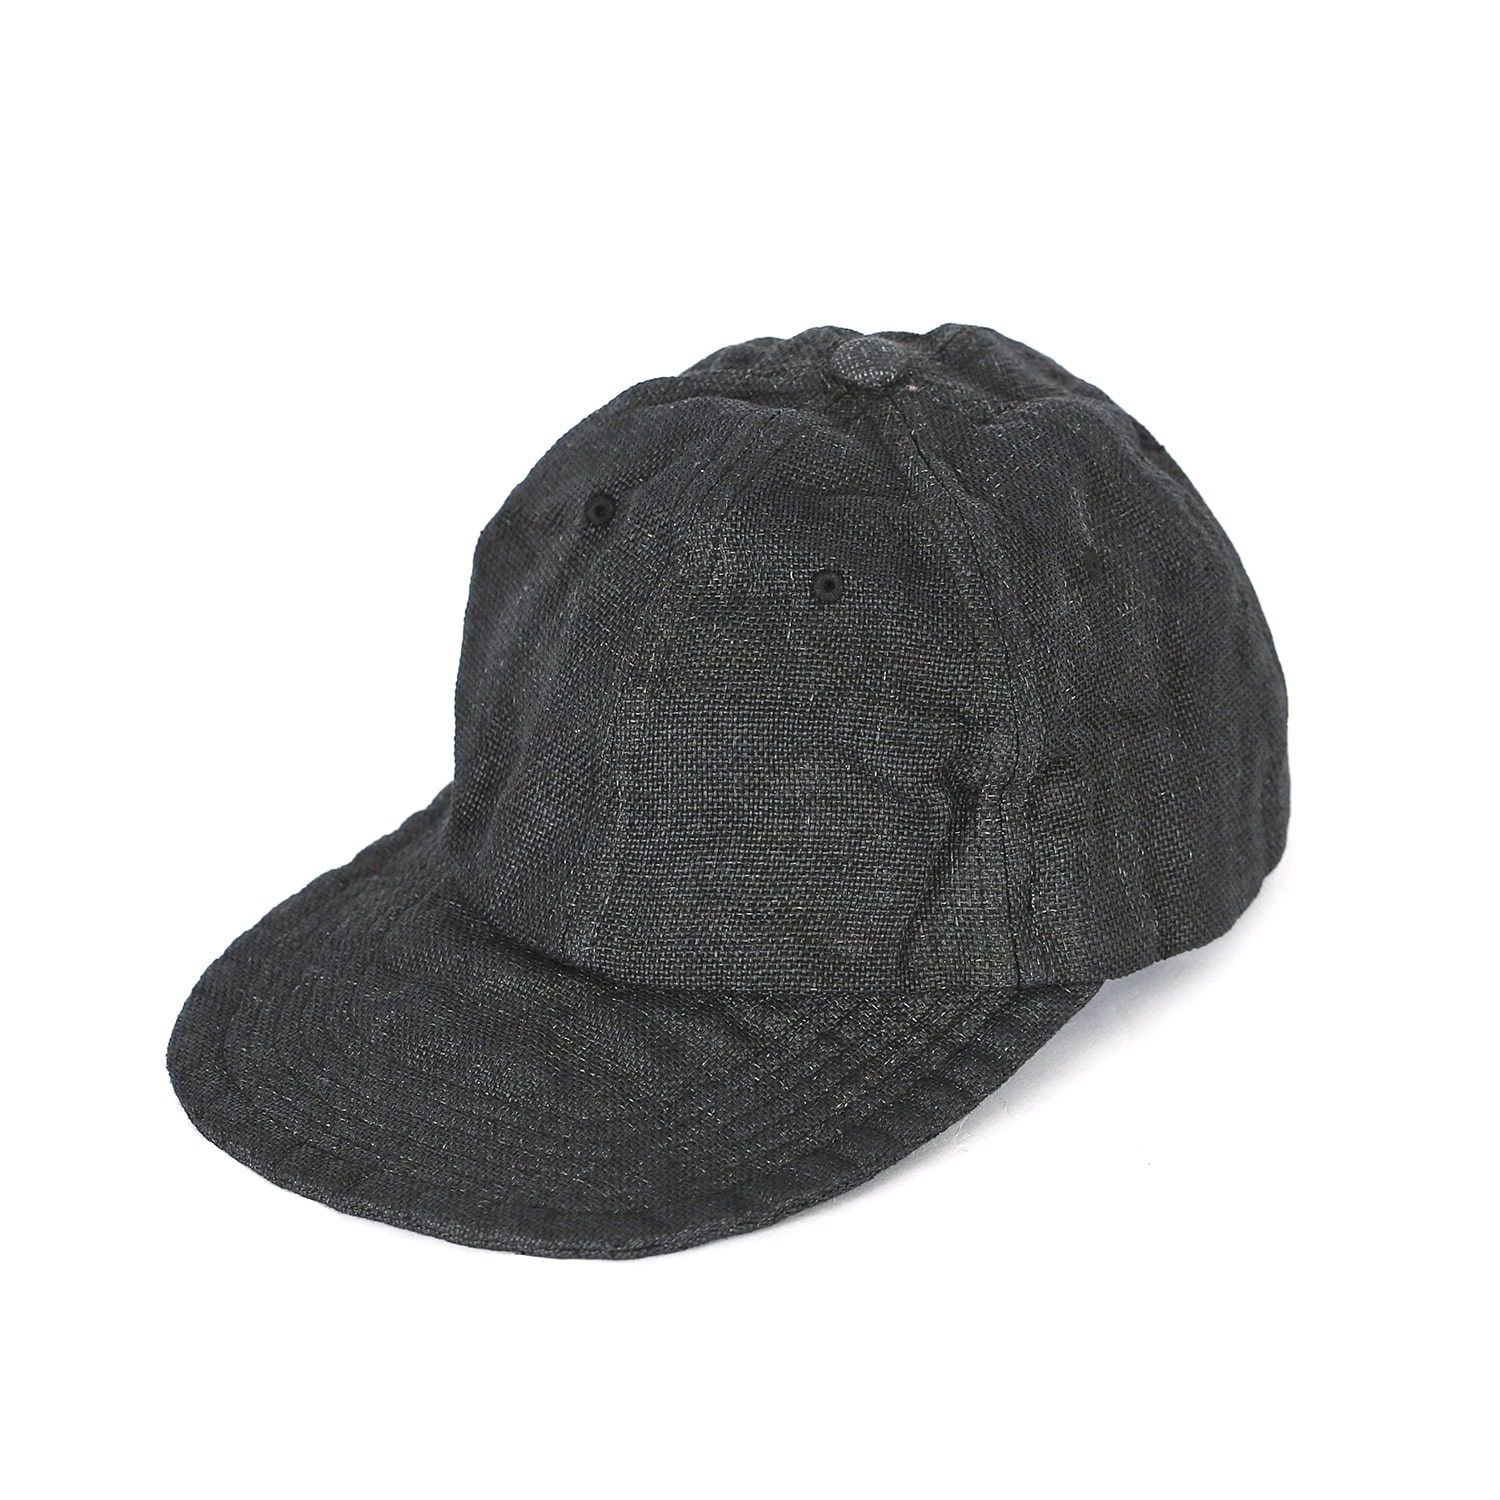 Overdyed P/Cloth Travel Cap - Black